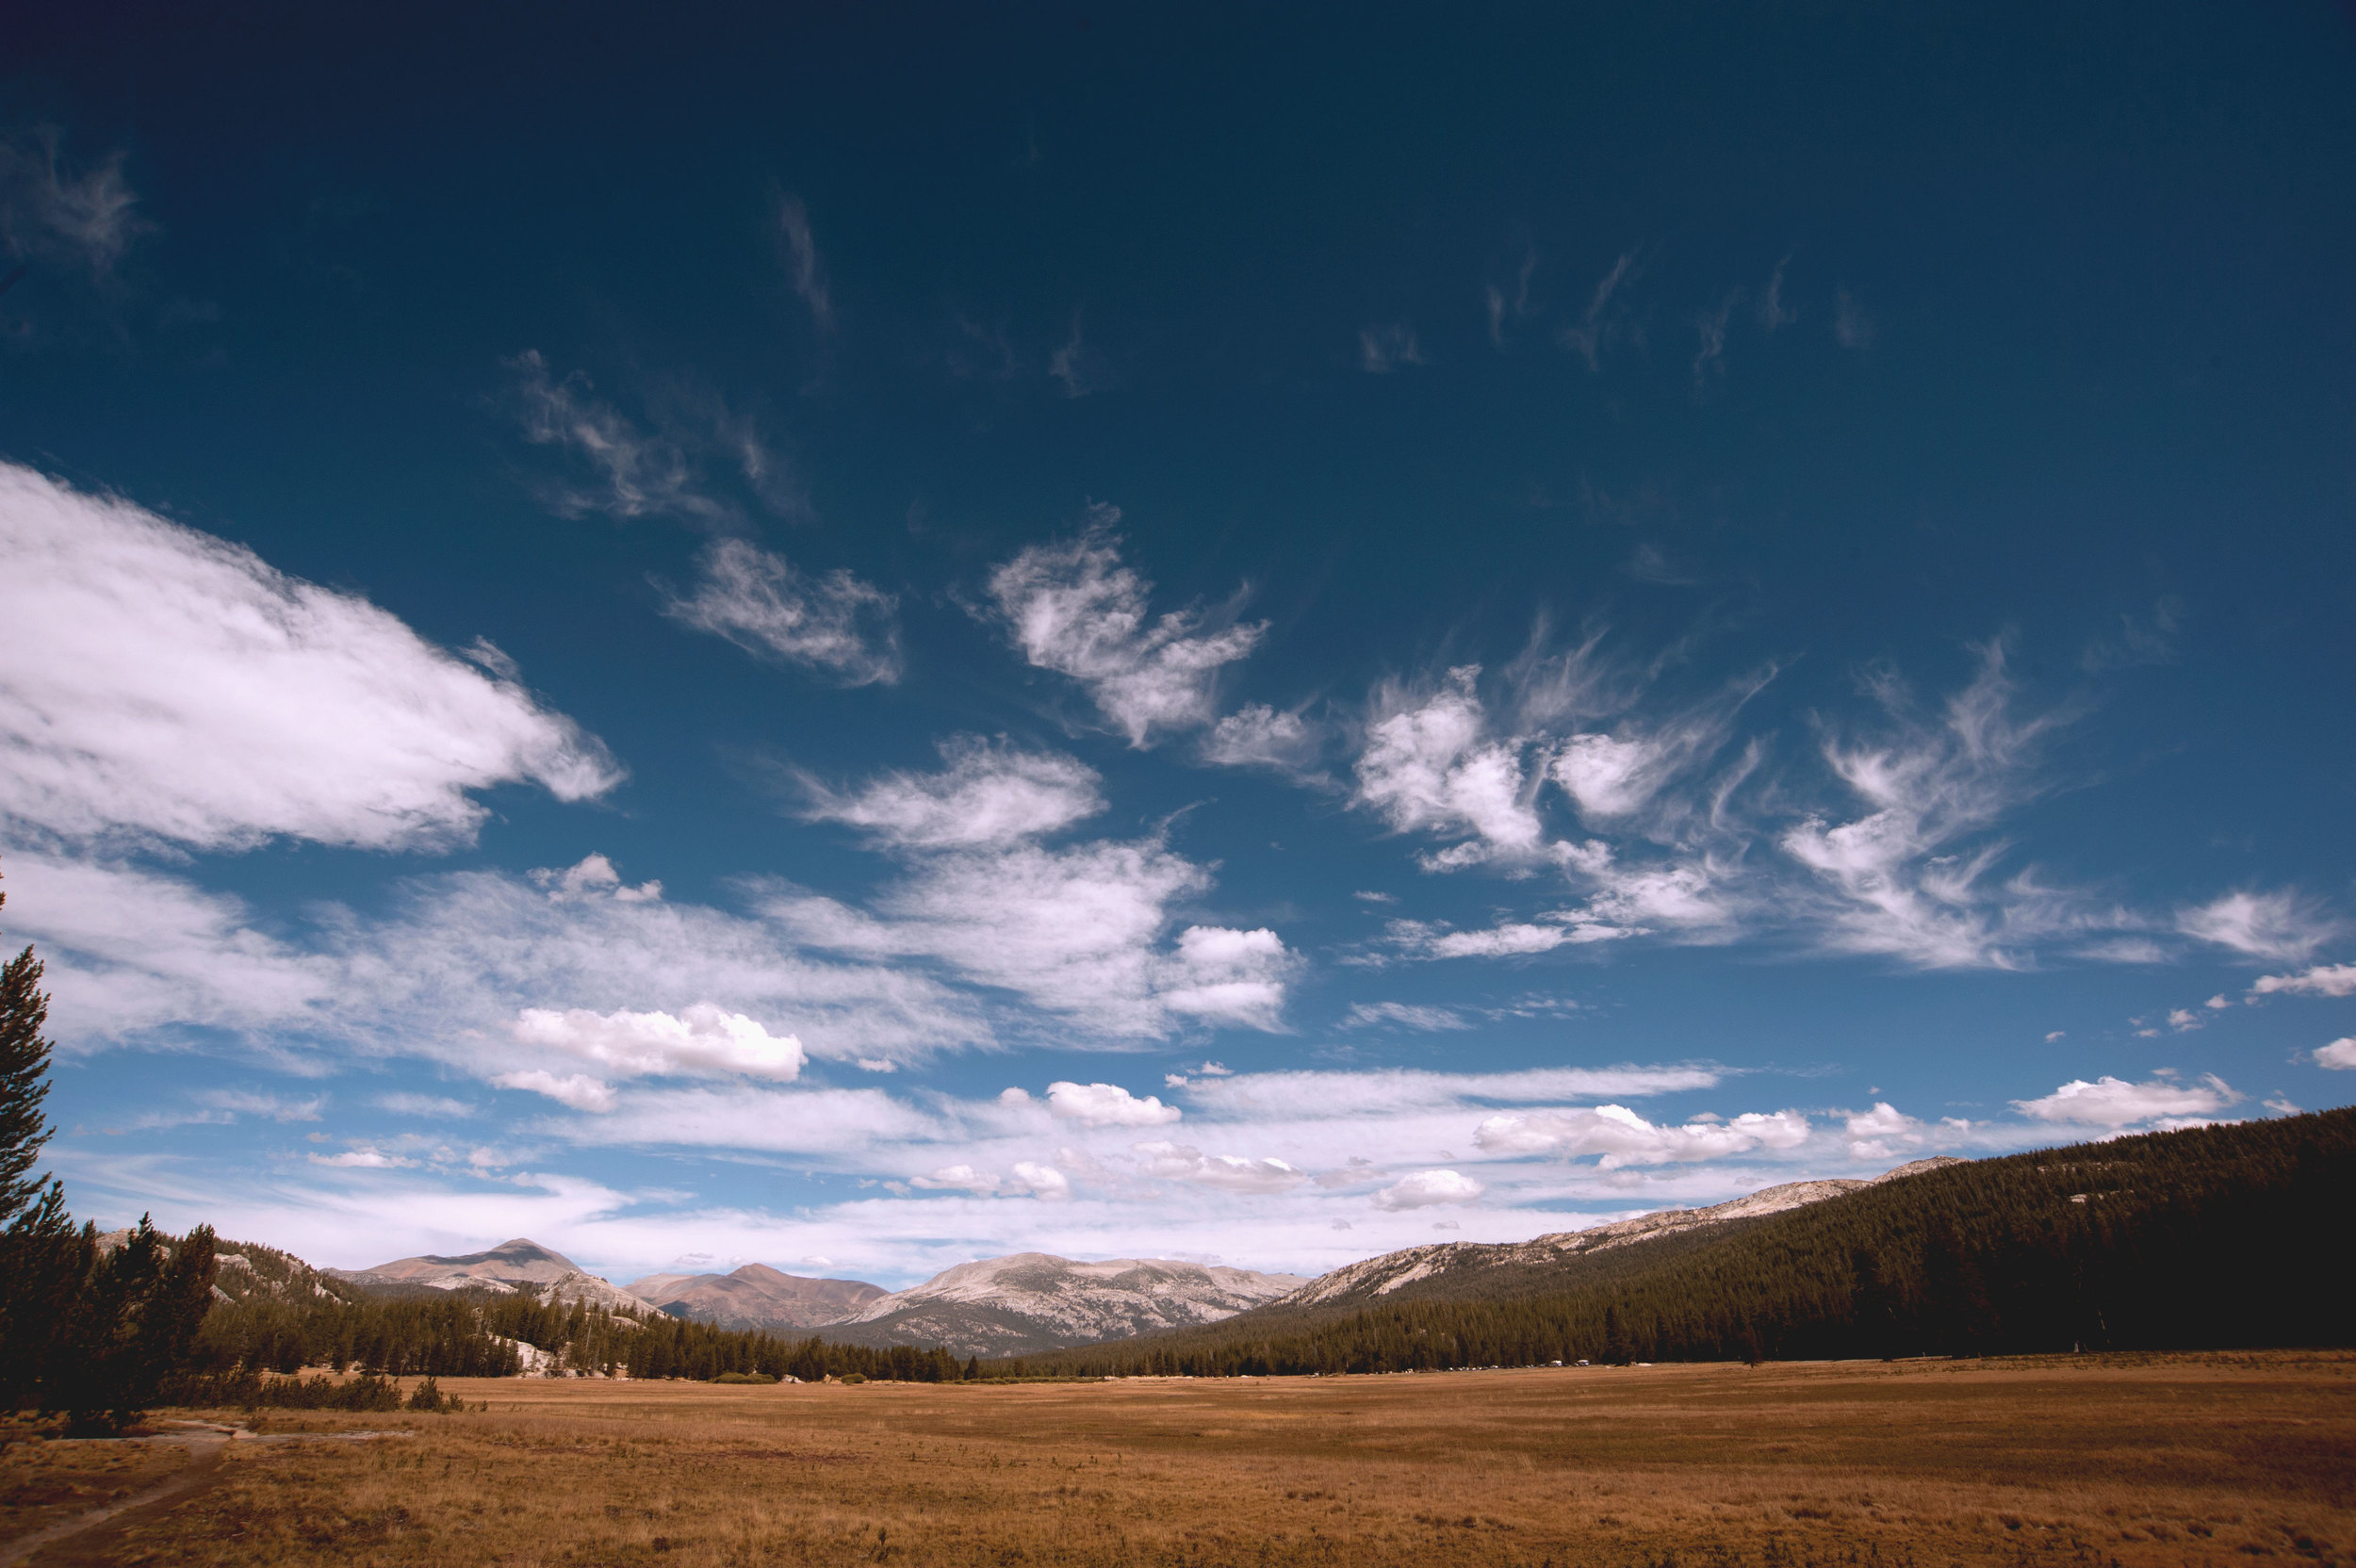 clouds-over-t-meadows.jpg